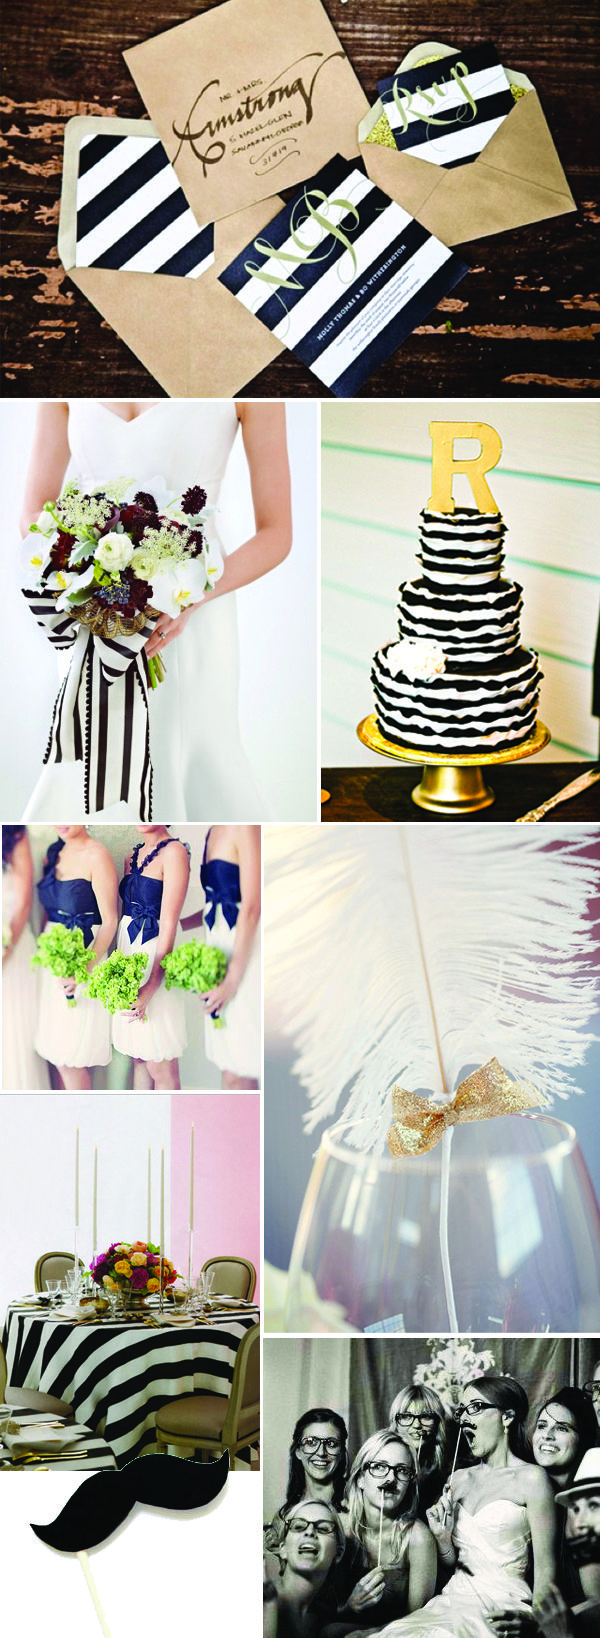 187 best Black/Coral Gold White images on Pinterest | Cake wedding ...